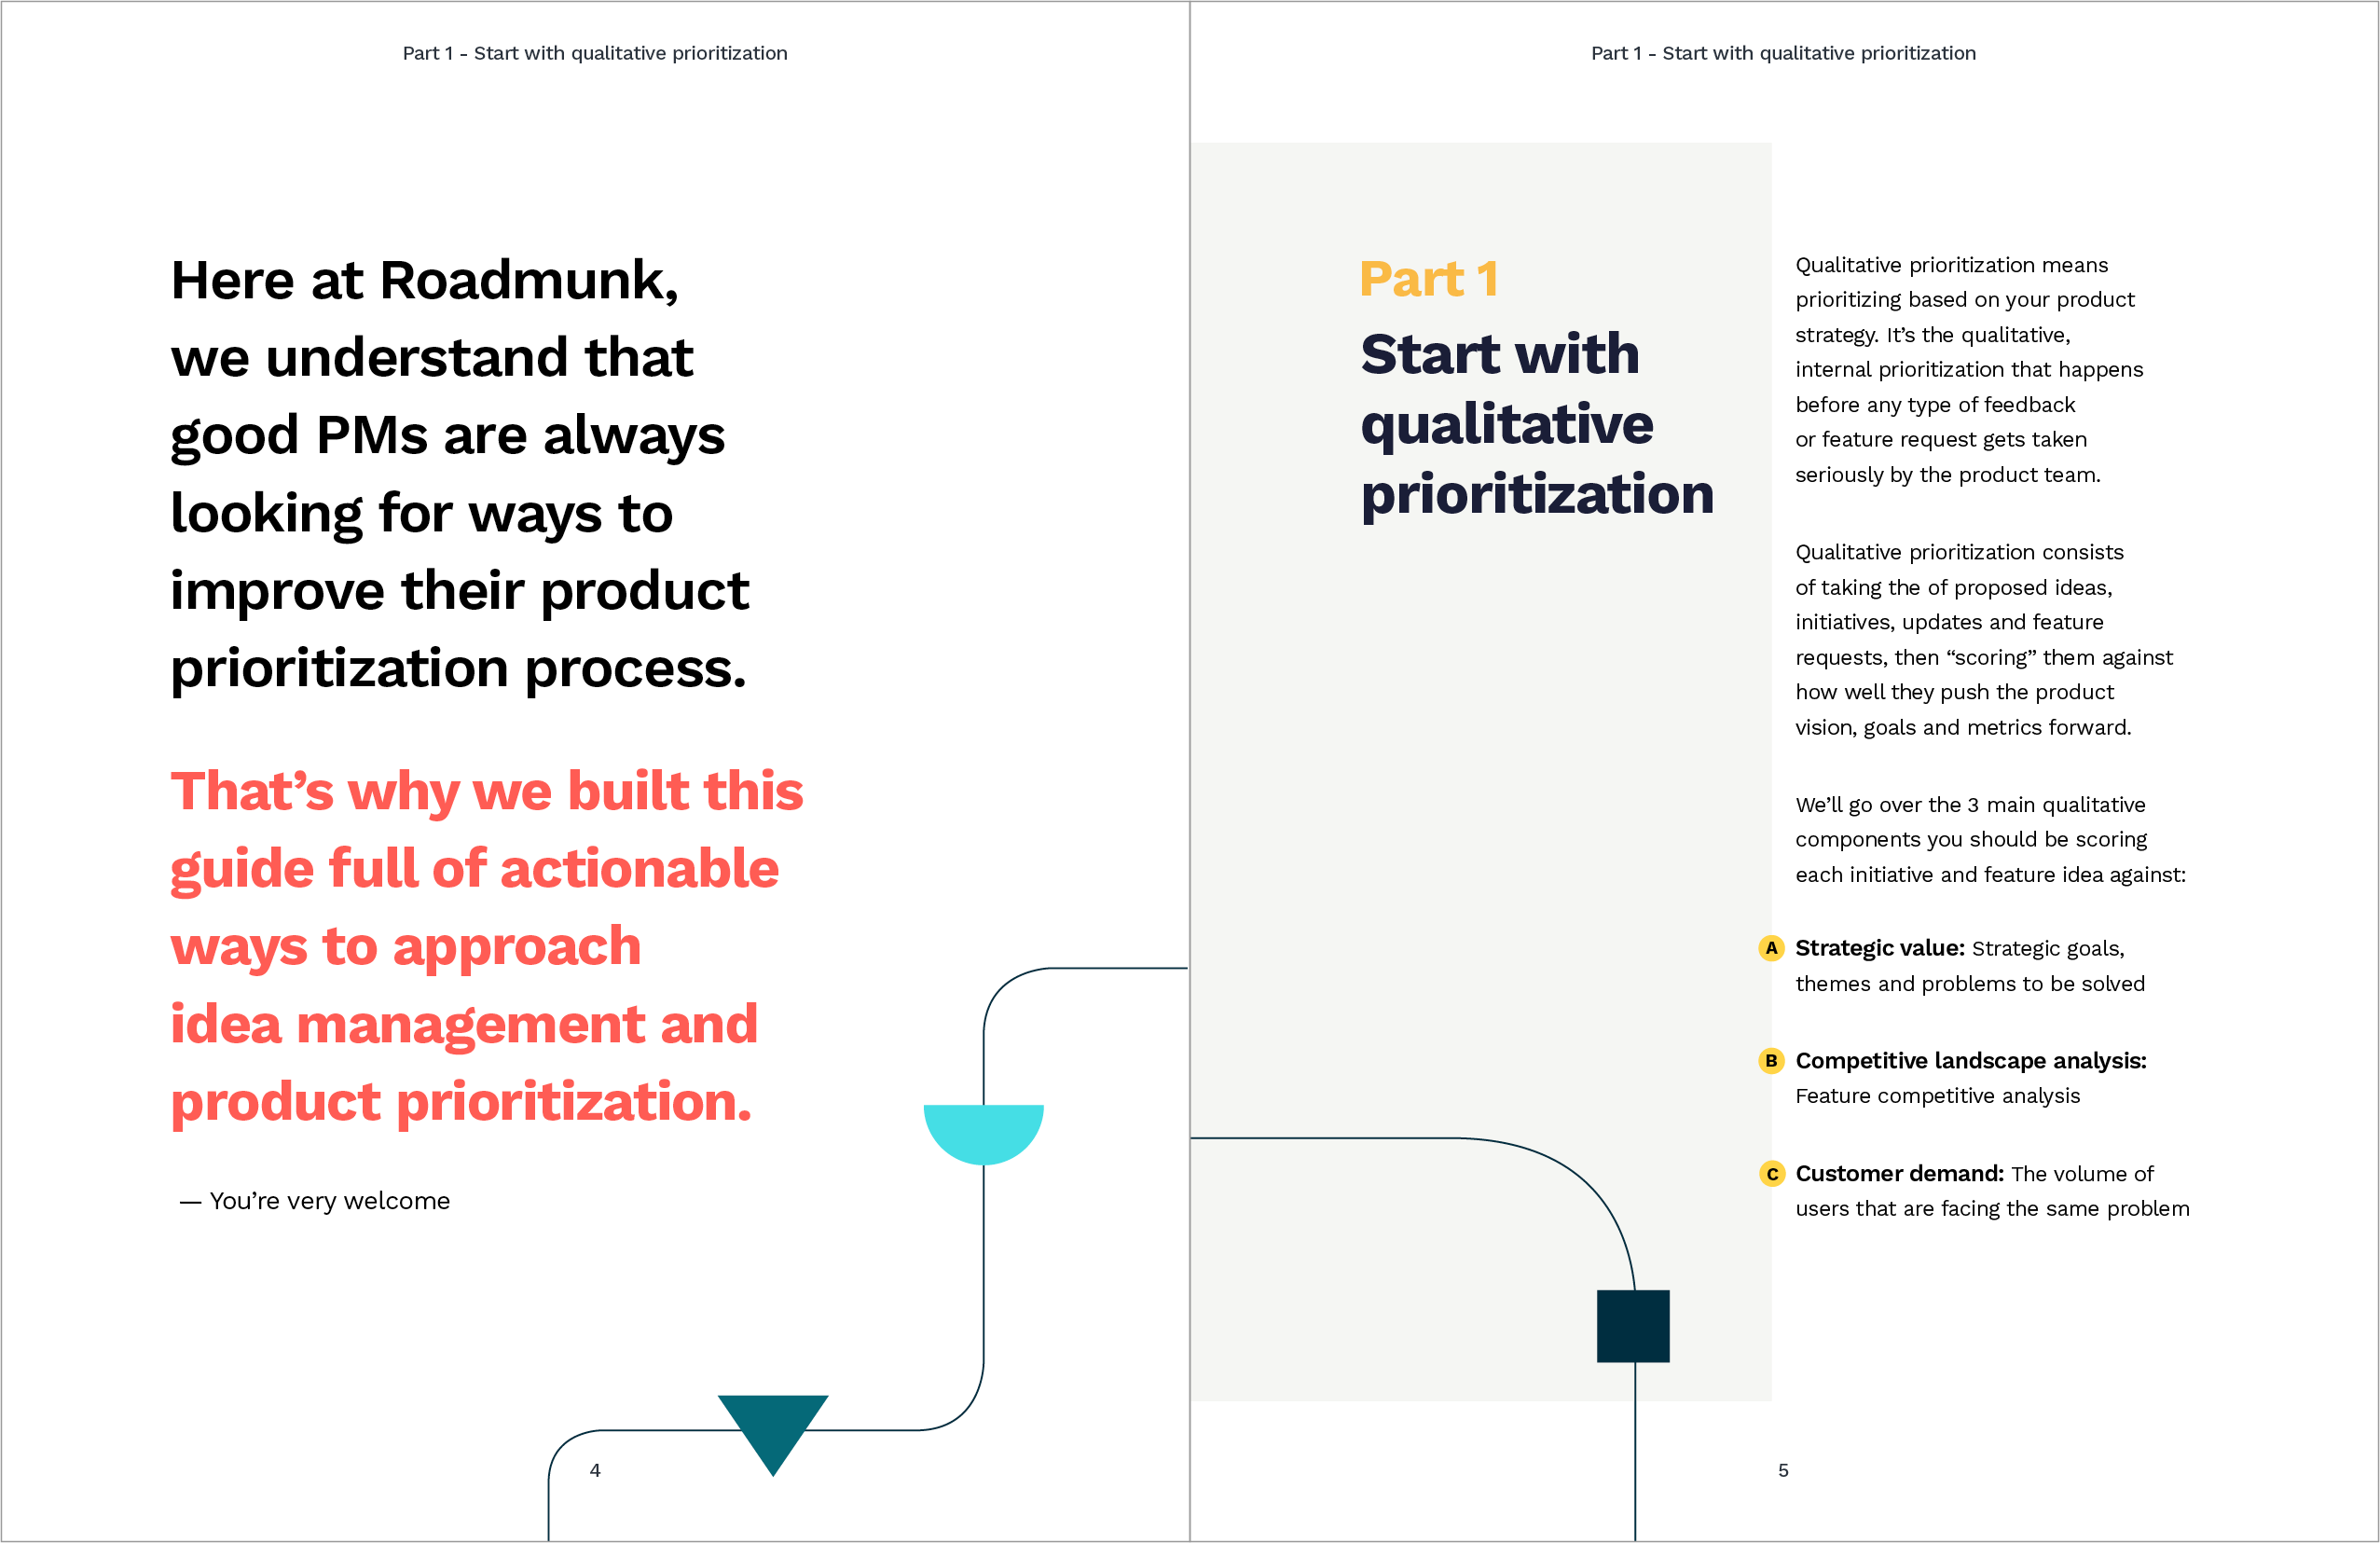 Part 1 spread: Start with qualitative prioritization